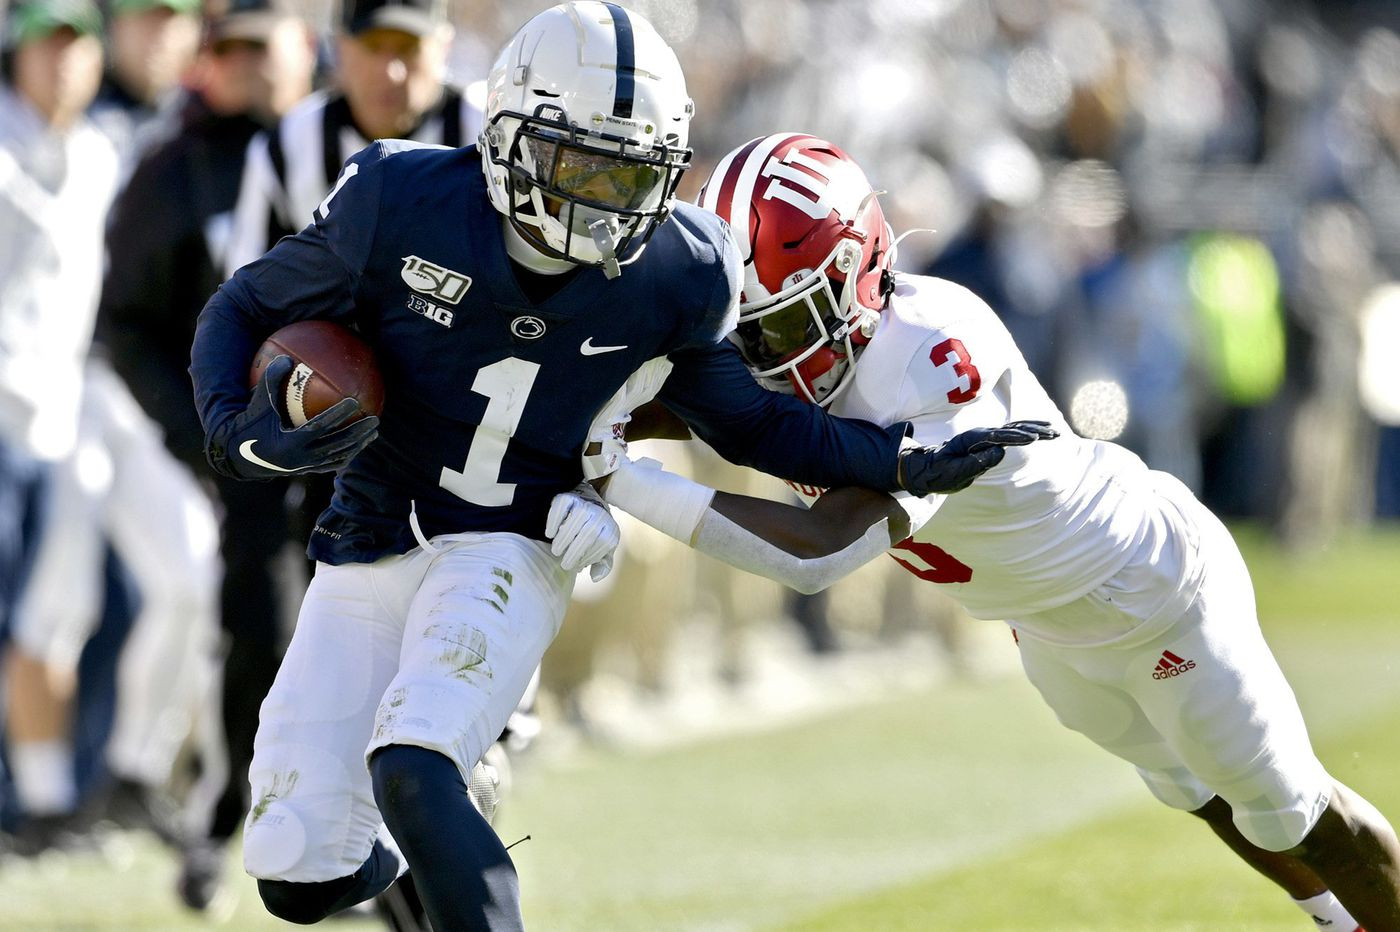 Penn State played last three quarters without KJ Hamler, its top receiver